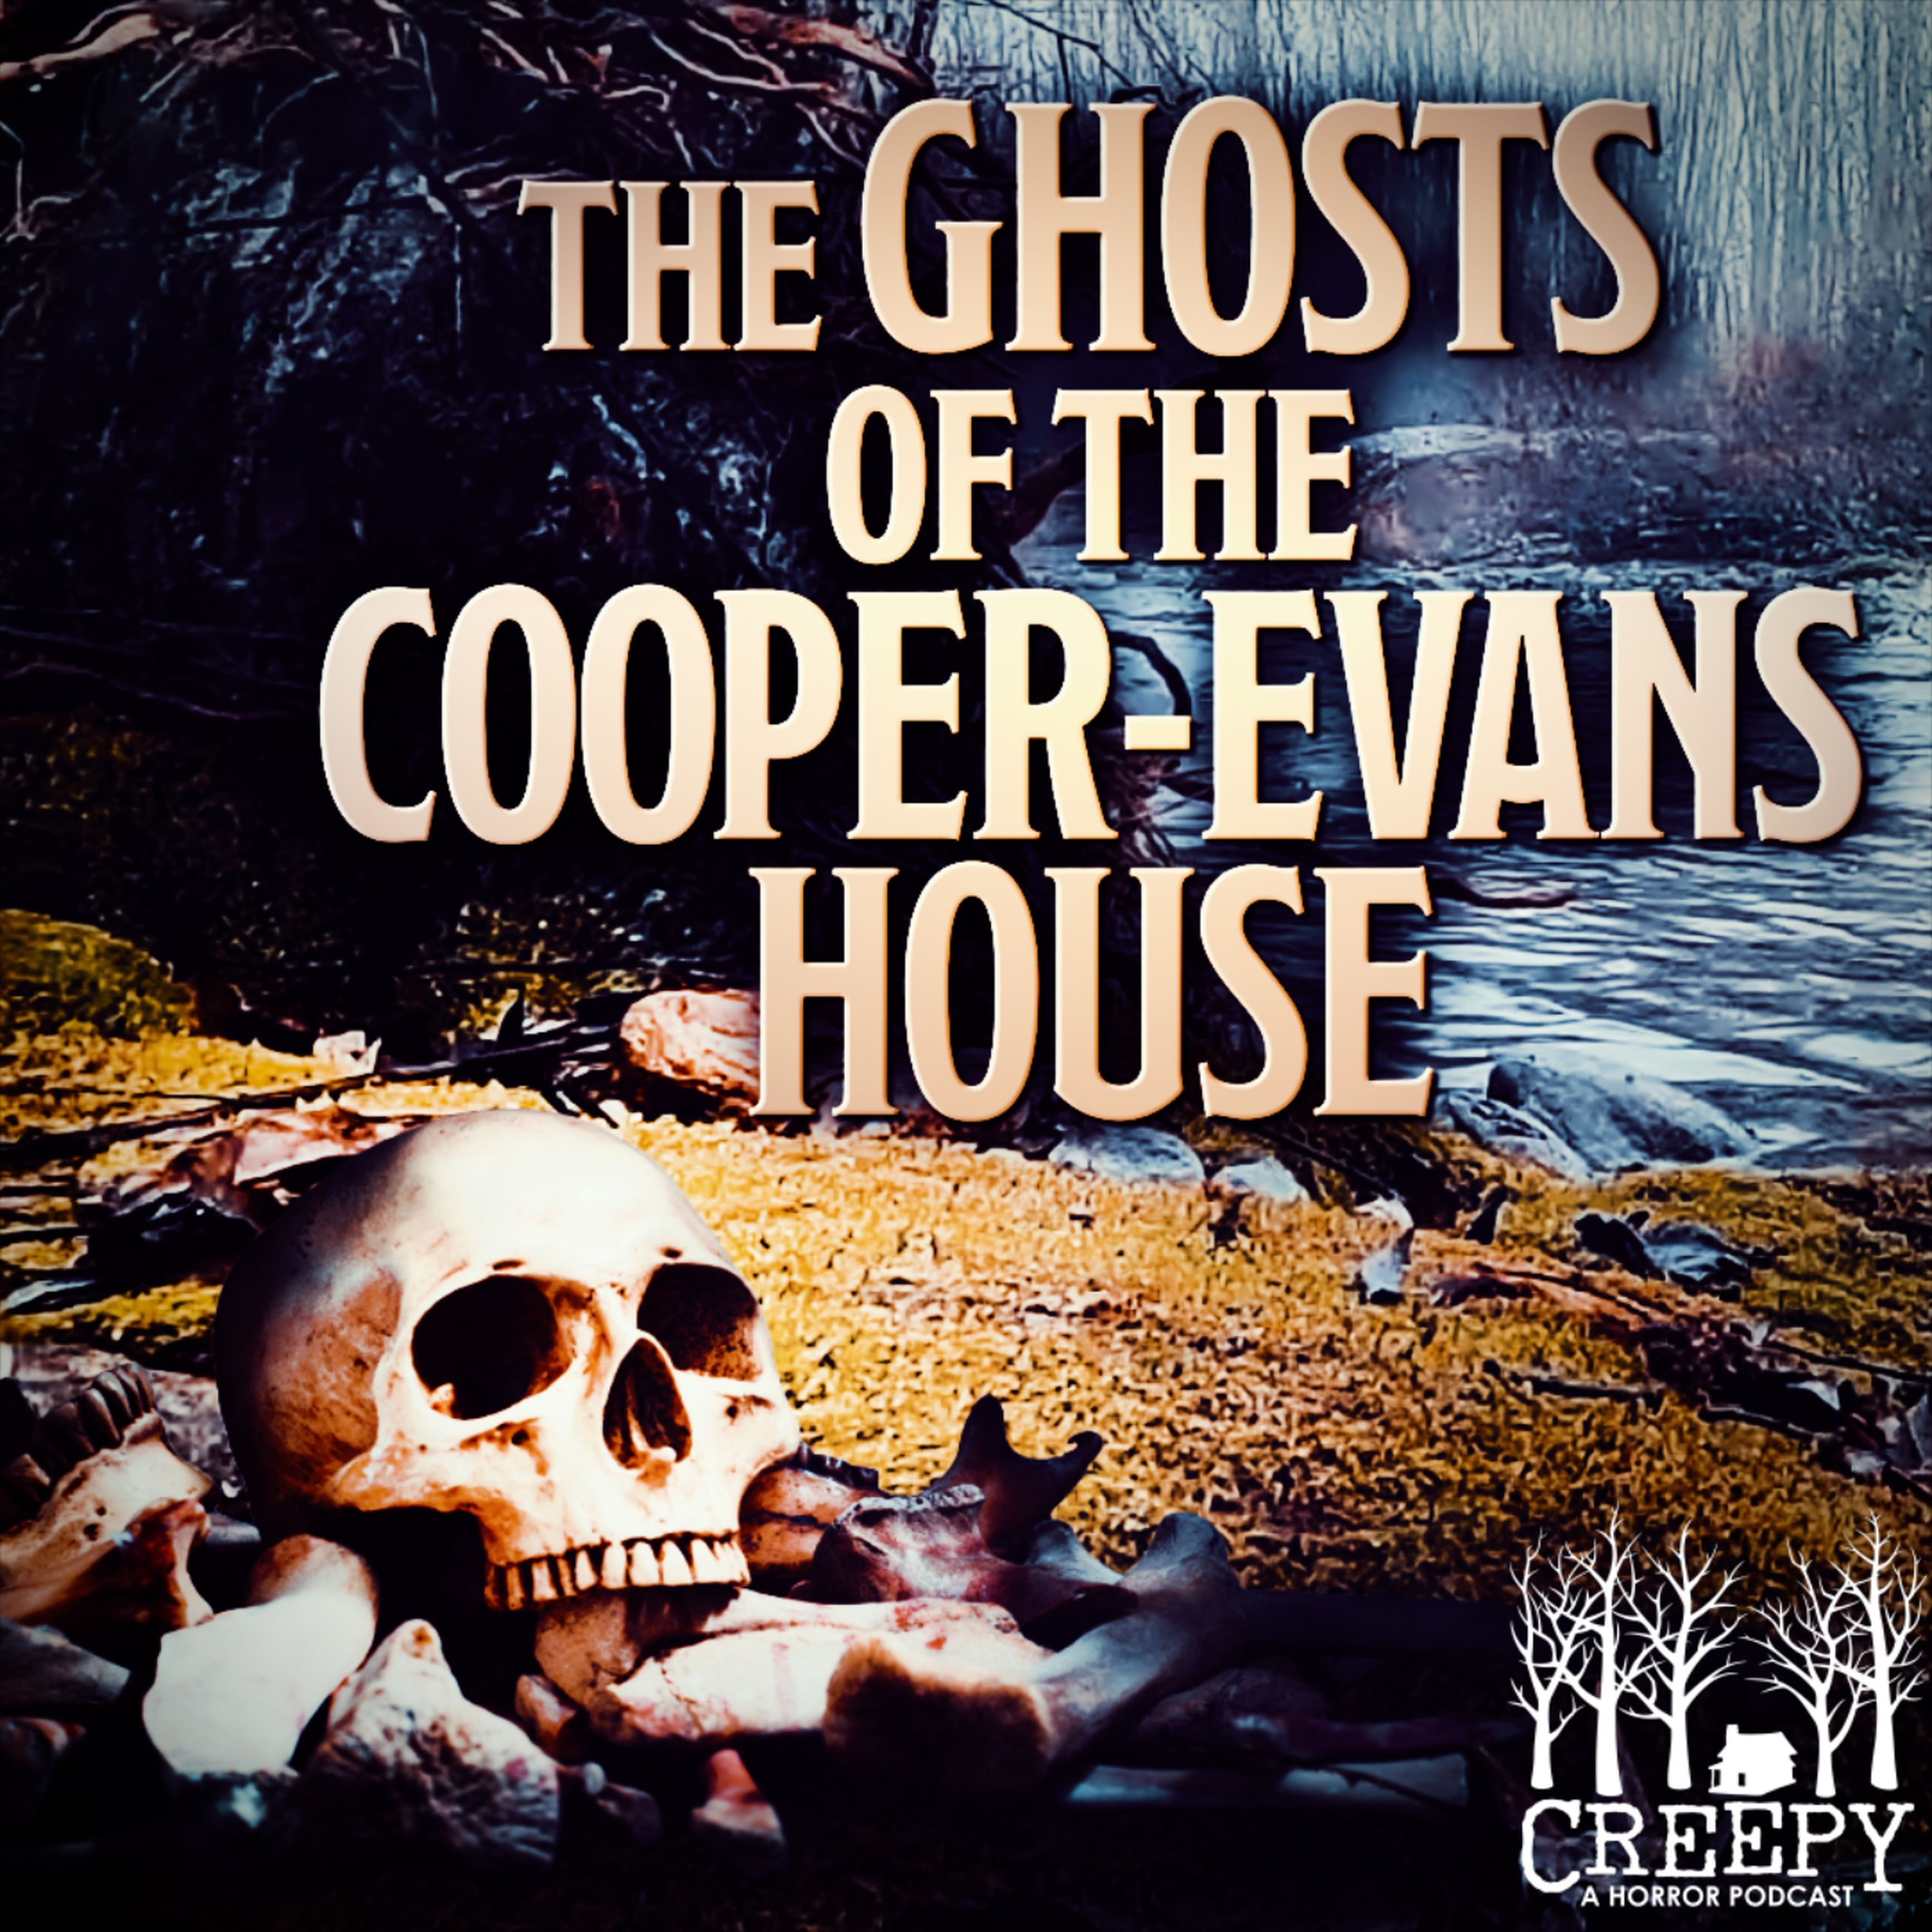 The Ghosts of the Cooper-Evans House